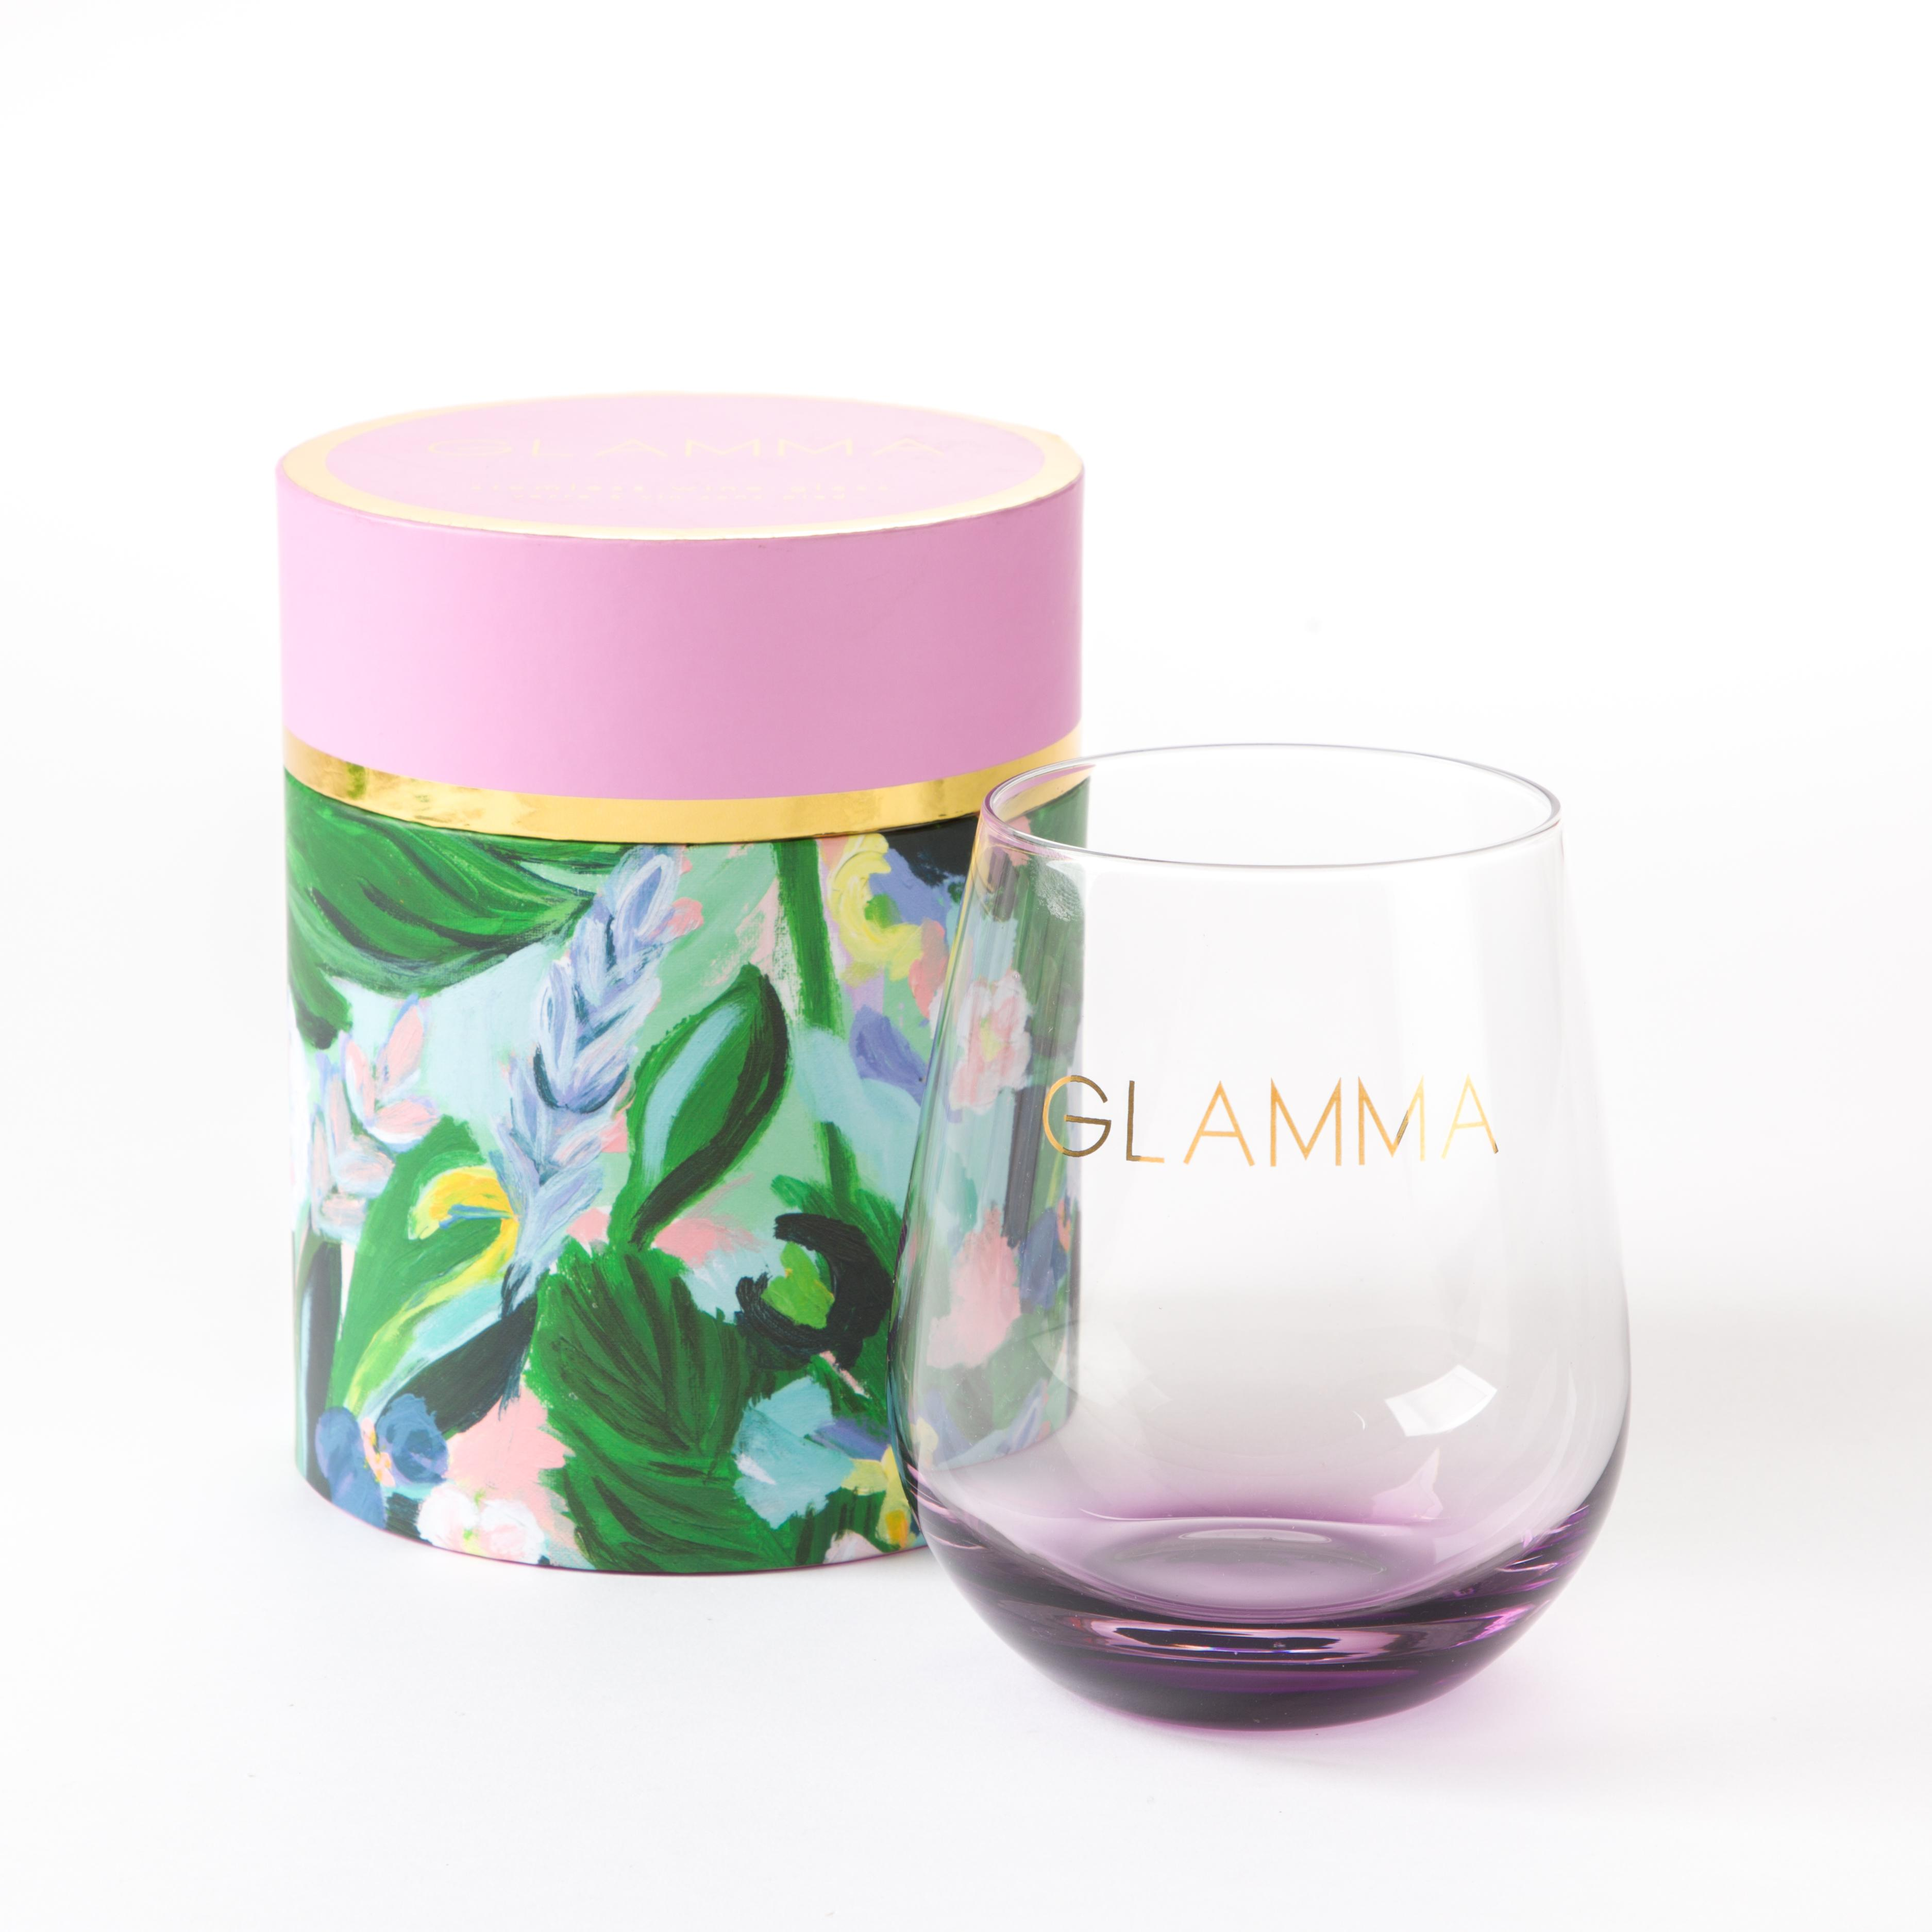 PAPYRUS Glamma Stemless Wine Glass // Price: $14.95// Purchase at PAPYRUS stores // (Photo: PAPYRUS)